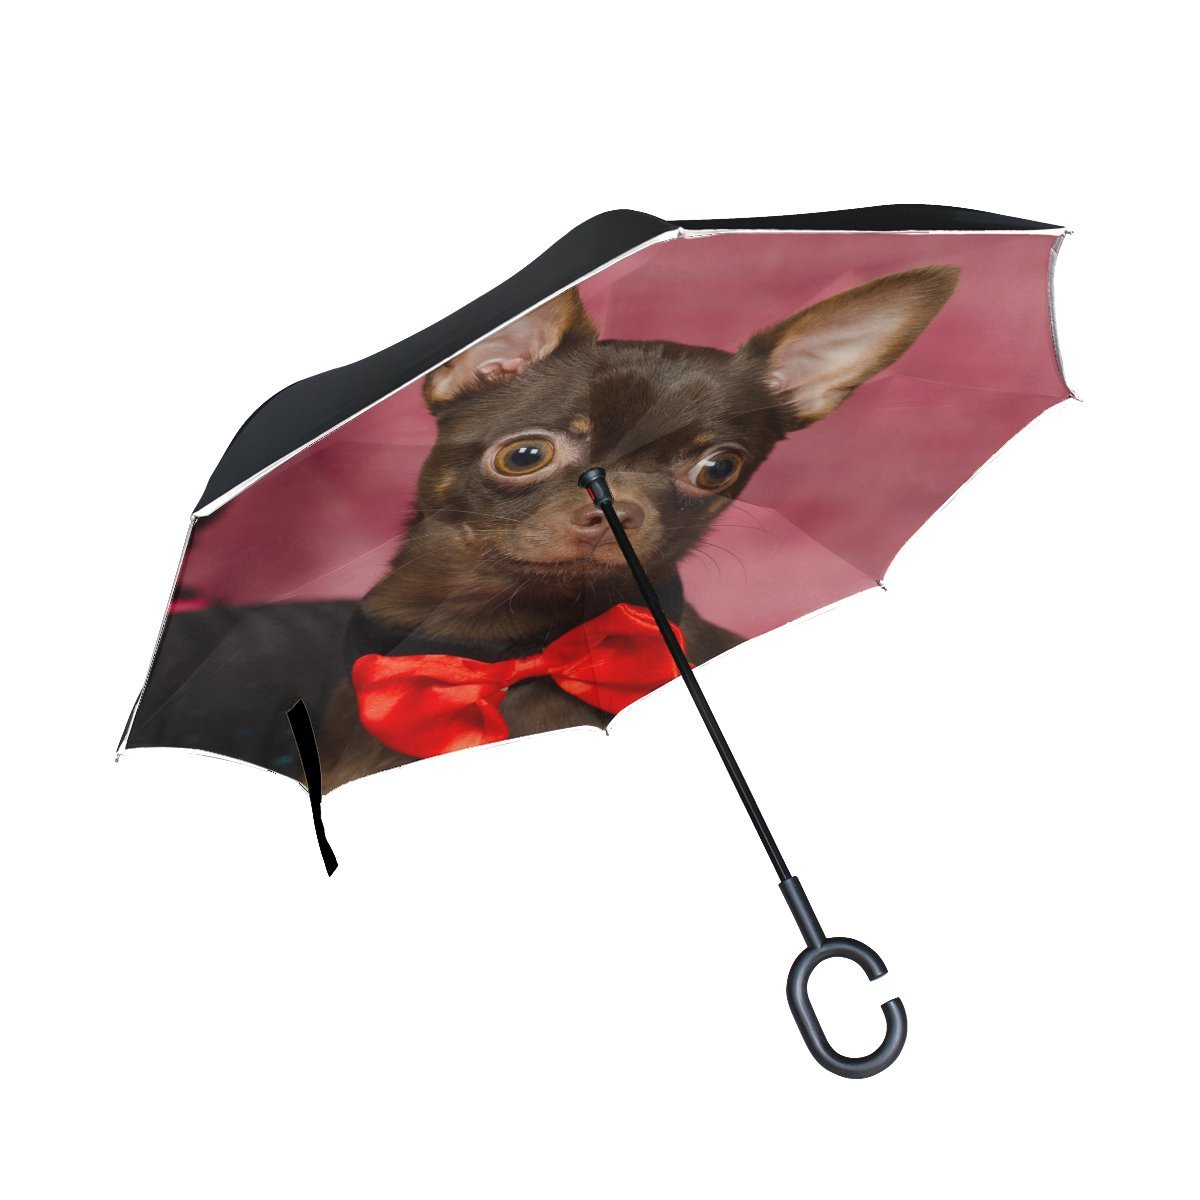 JOCHUAN Animal Dog Affenpinscher Brown Small Fluffy Puppy Adorable Pet Inverted Umbrella Large Double Layer Outdoor Rain Sun Car Reversible Umbrella